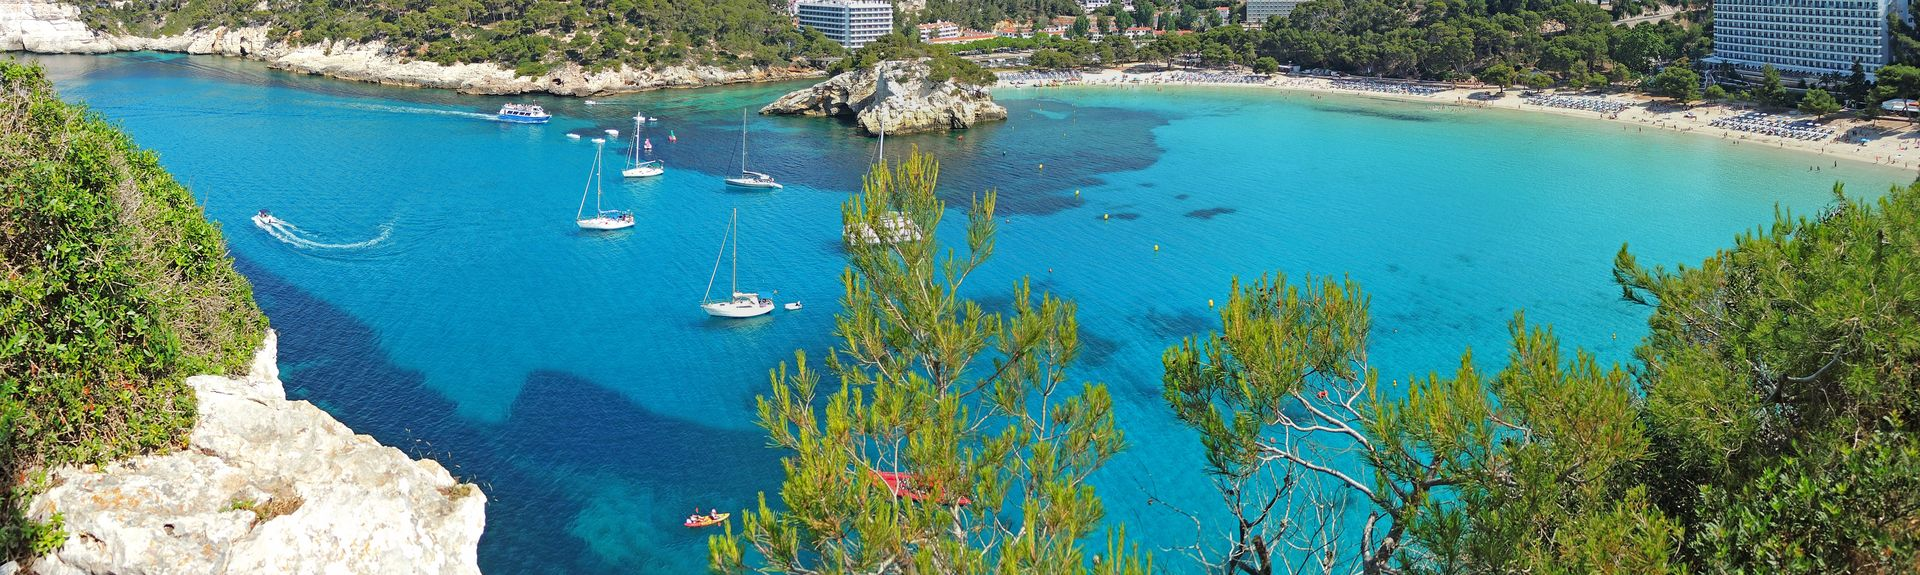 Cala Galdana, Balearic Islands, Spain